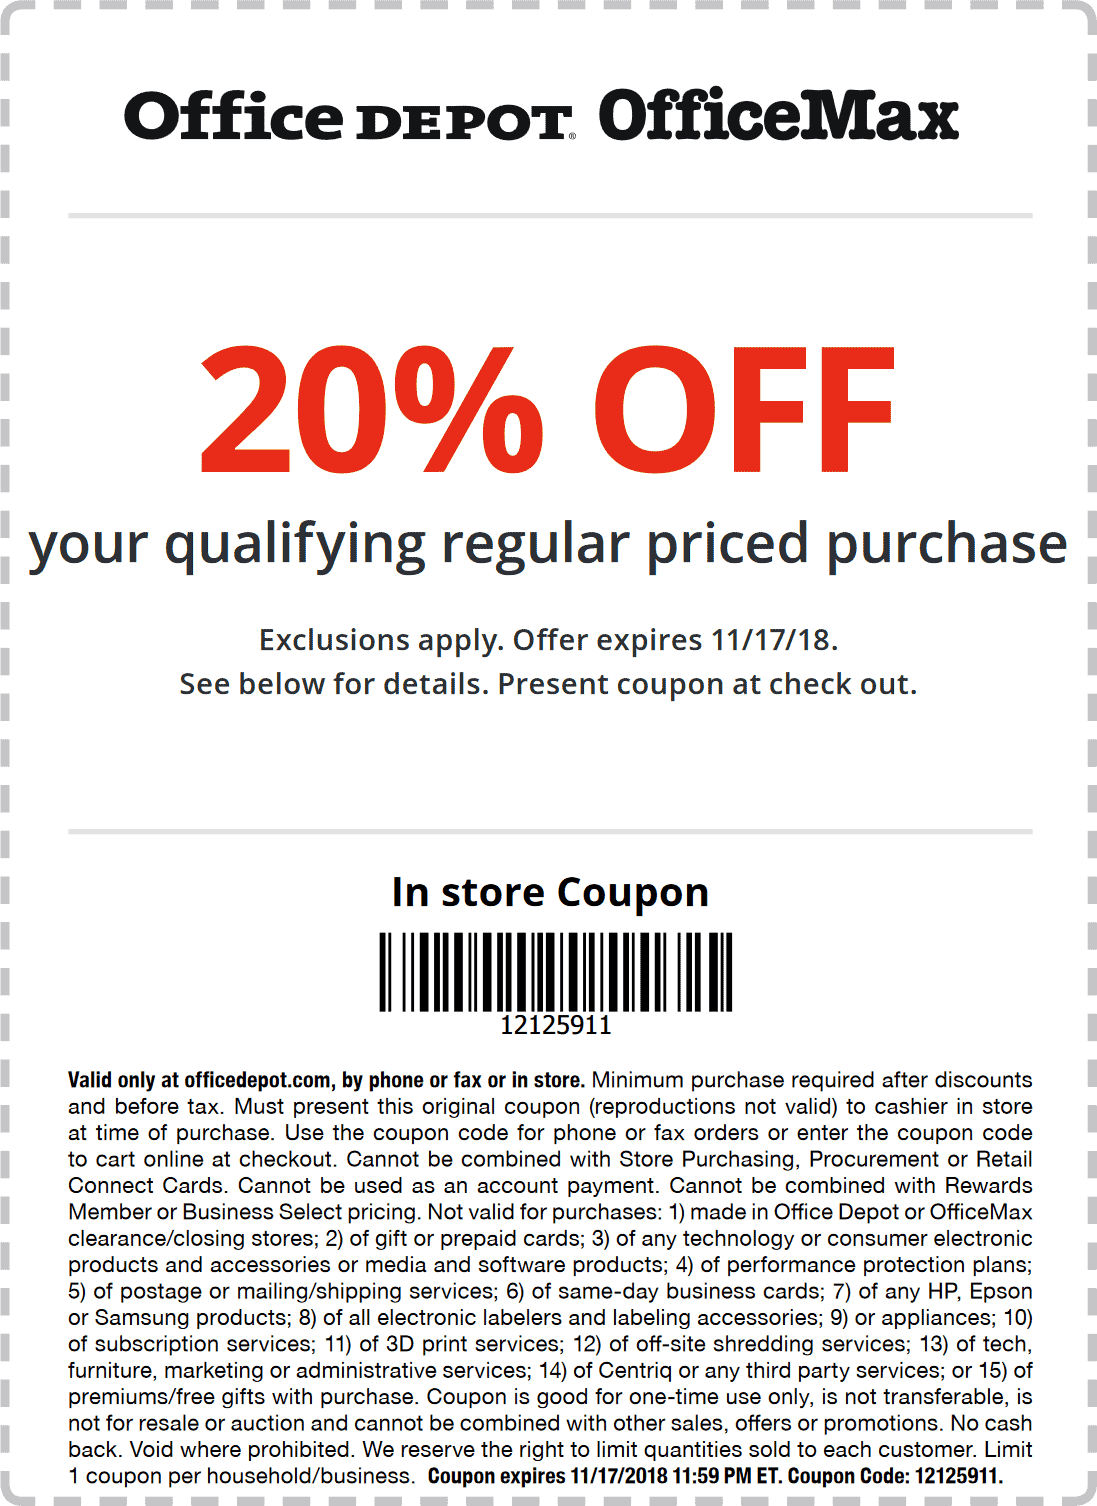 Office Depot Coupon June 2019 20% off at Office Depot & OfficeMax, or online via promo code 12125911